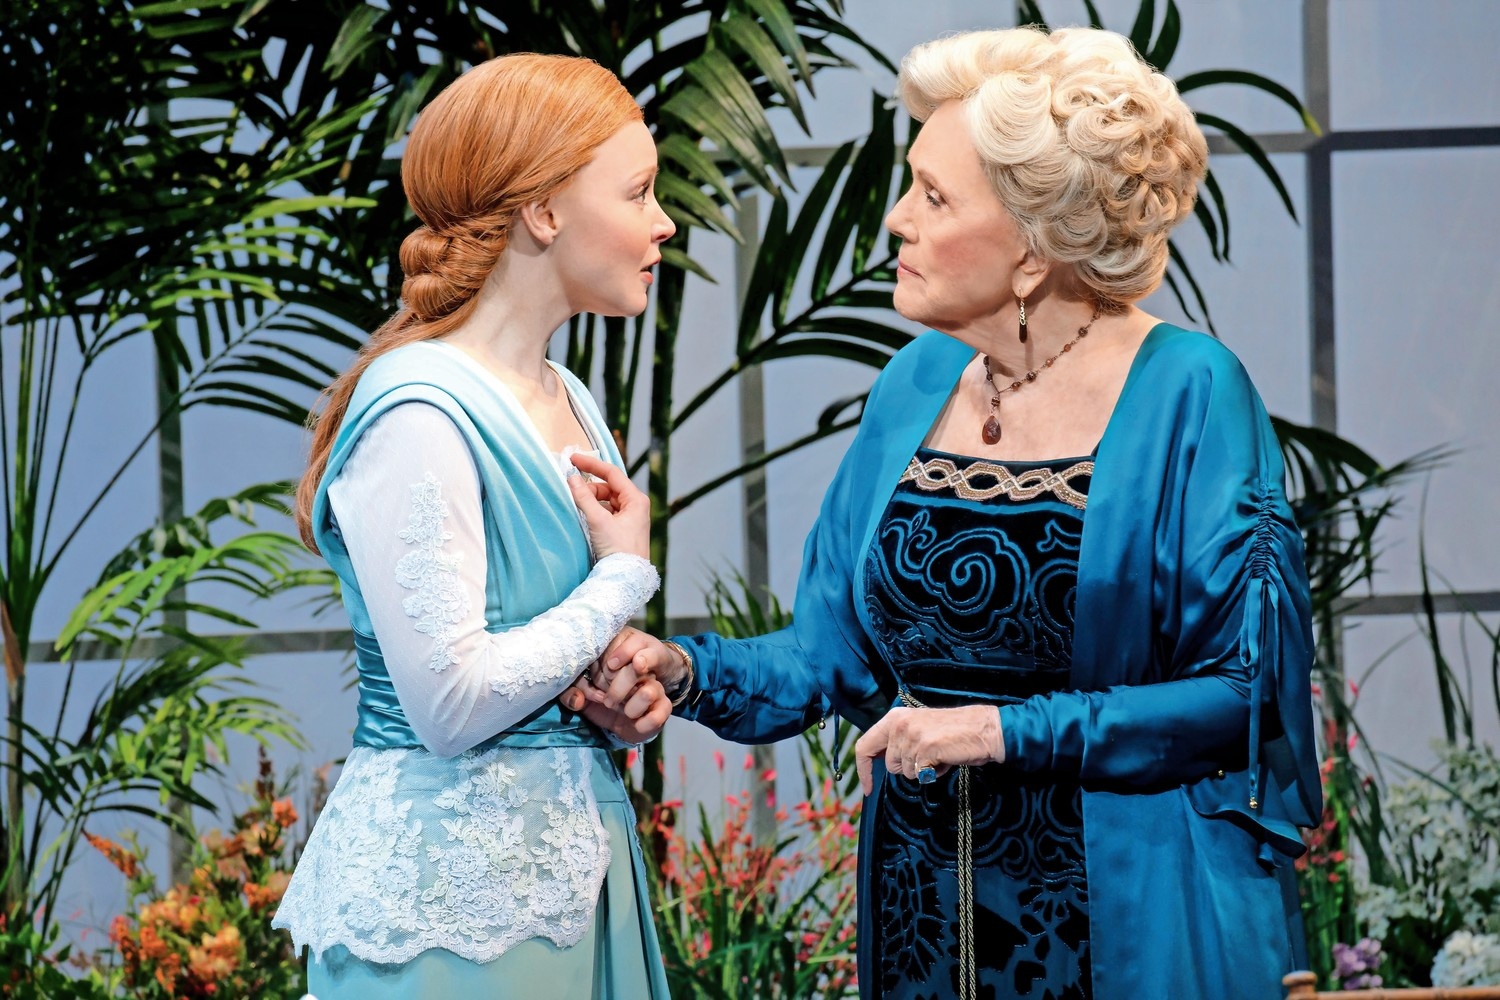 Lauren Ambrose of 'Six Feet Under' fame shines as the golden-voiced Eliza Doolittle, while 'Game of Thrones' fans get their own treat with Diana Rigg as Mrs. Higgins in the Lincoln Center's production of 'My Fair Lady.'